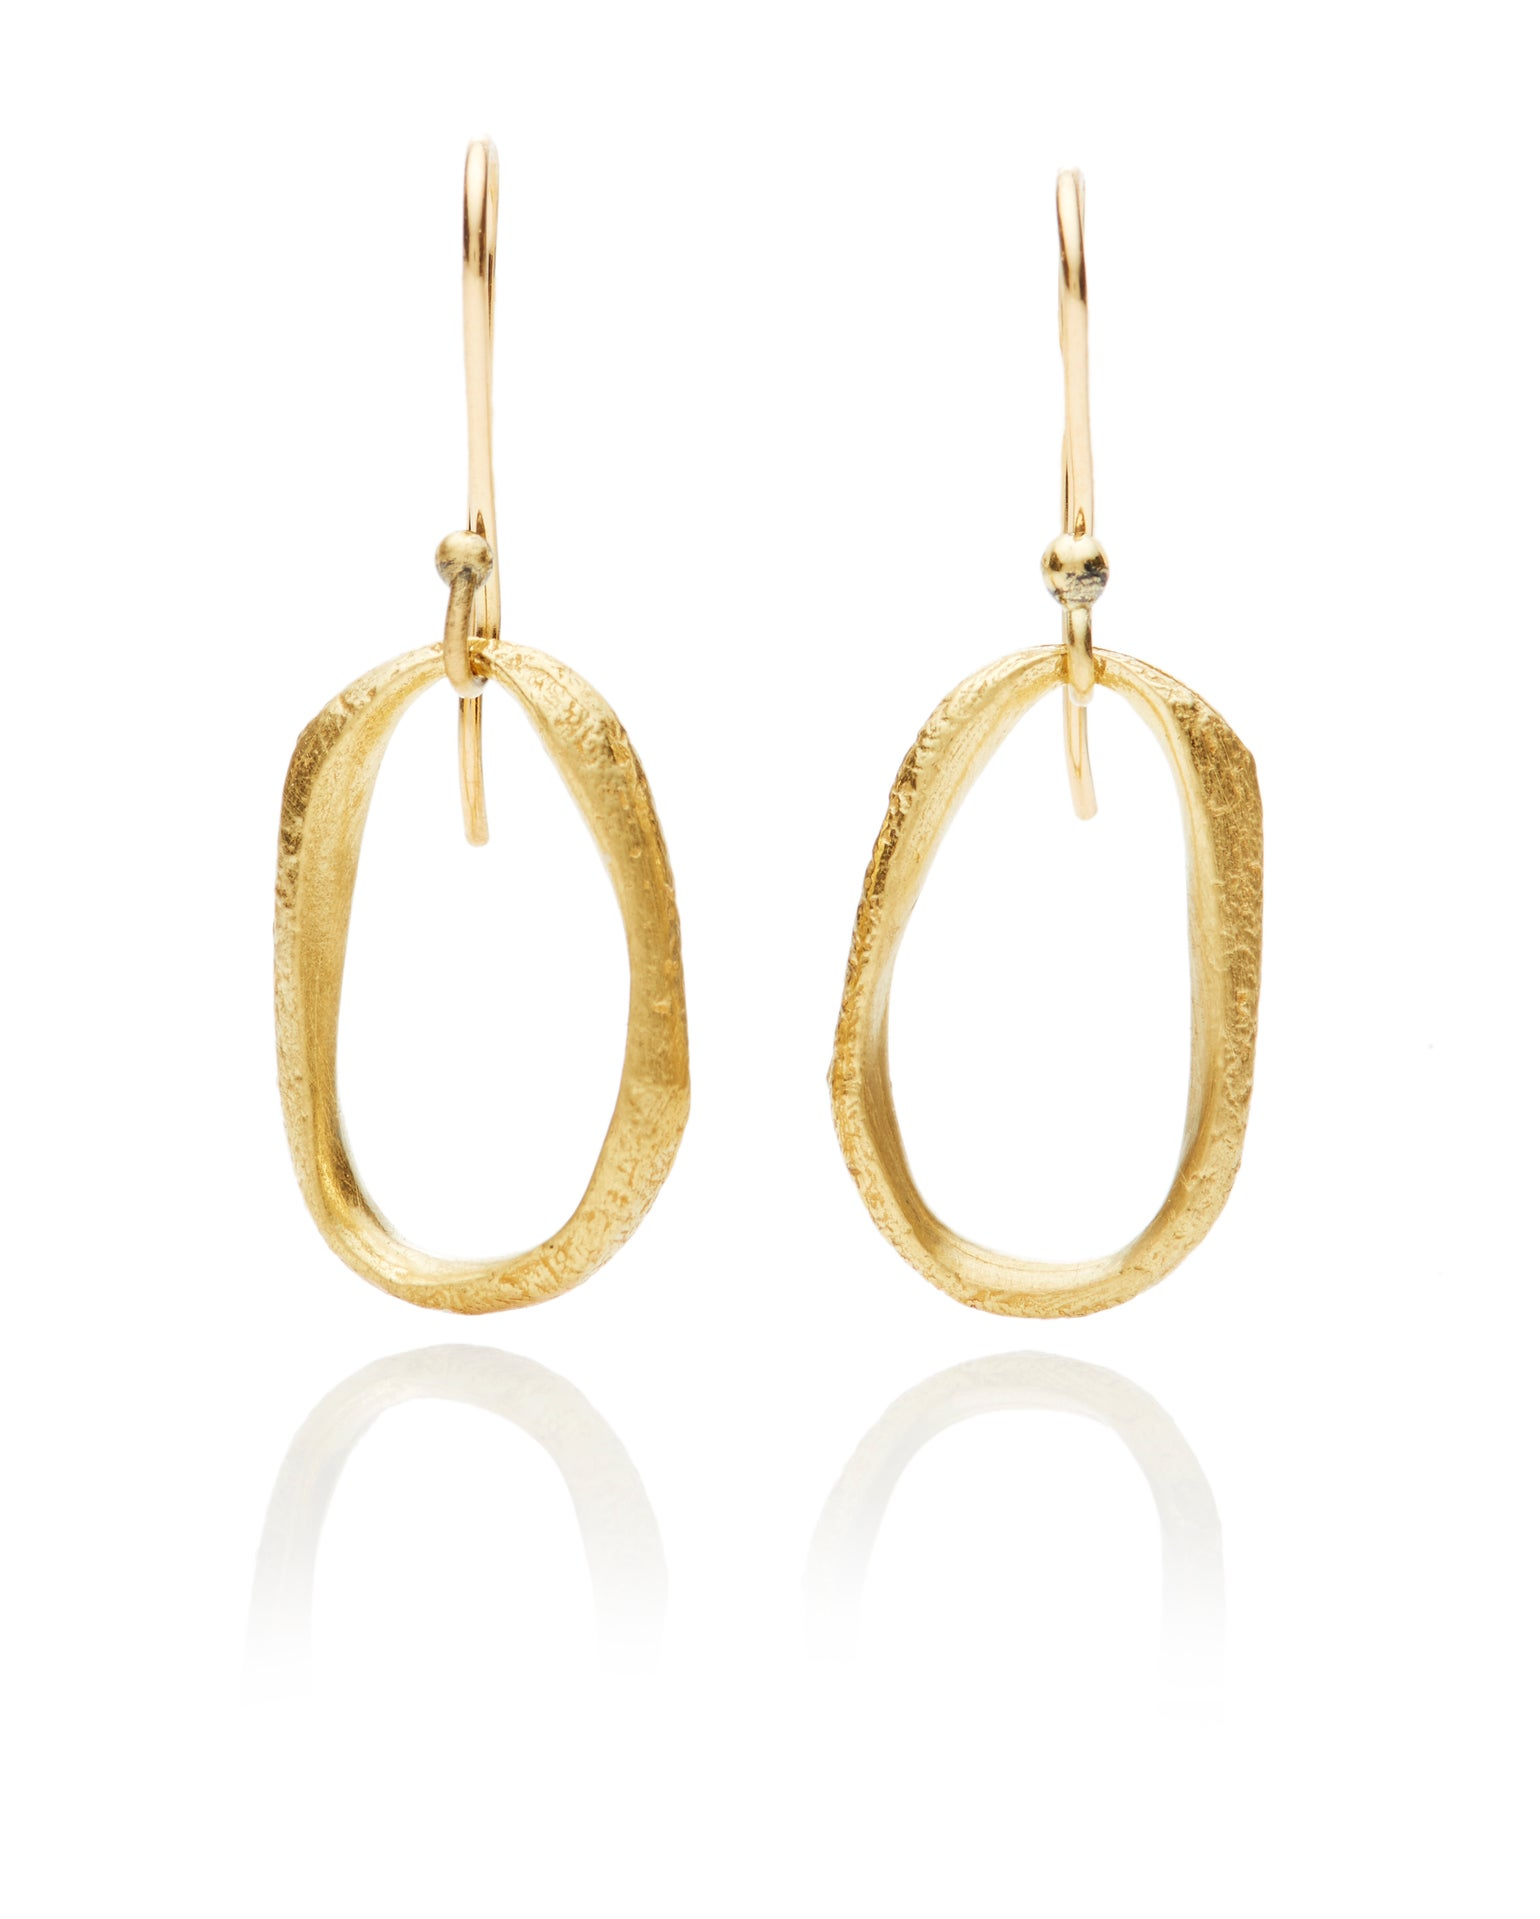 Image of Texture hanging oval earrings